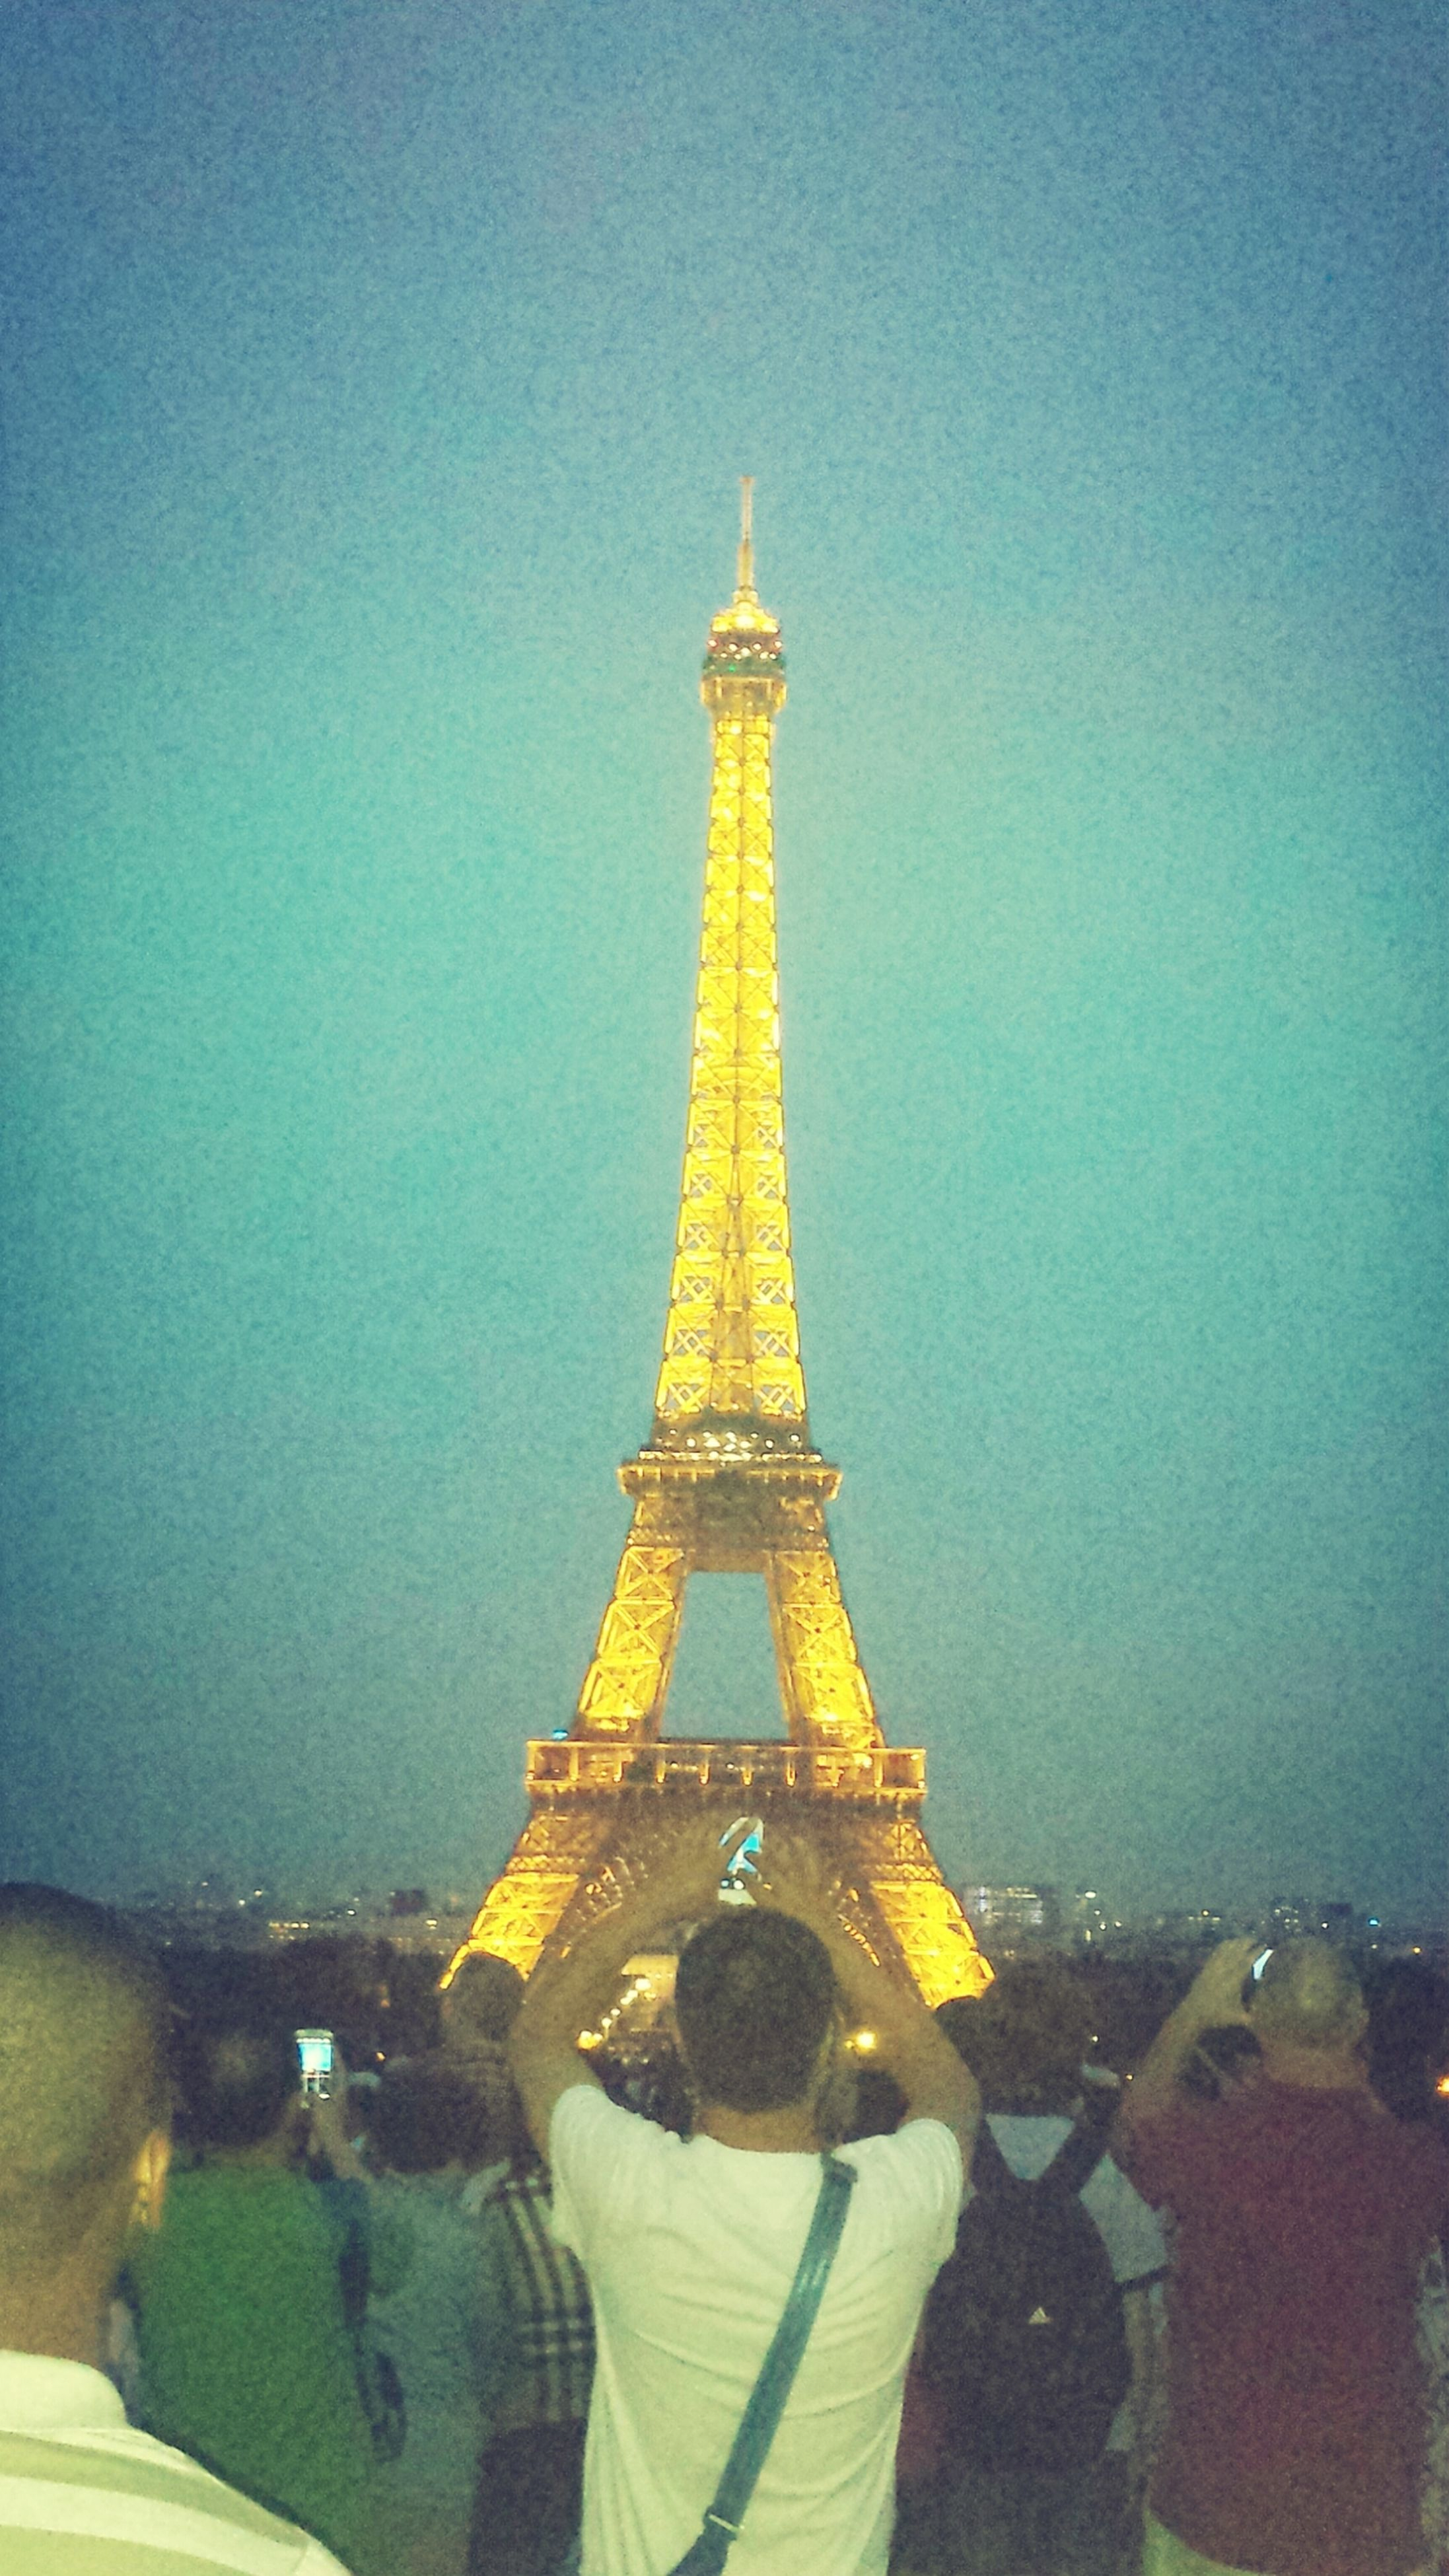 famous place, international landmark, tower, architecture, built structure, eiffel tower, travel destinations, tourism, capital cities, tall - high, travel, clear sky, building exterior, sky, culture, blue, copy space, history, city, tall